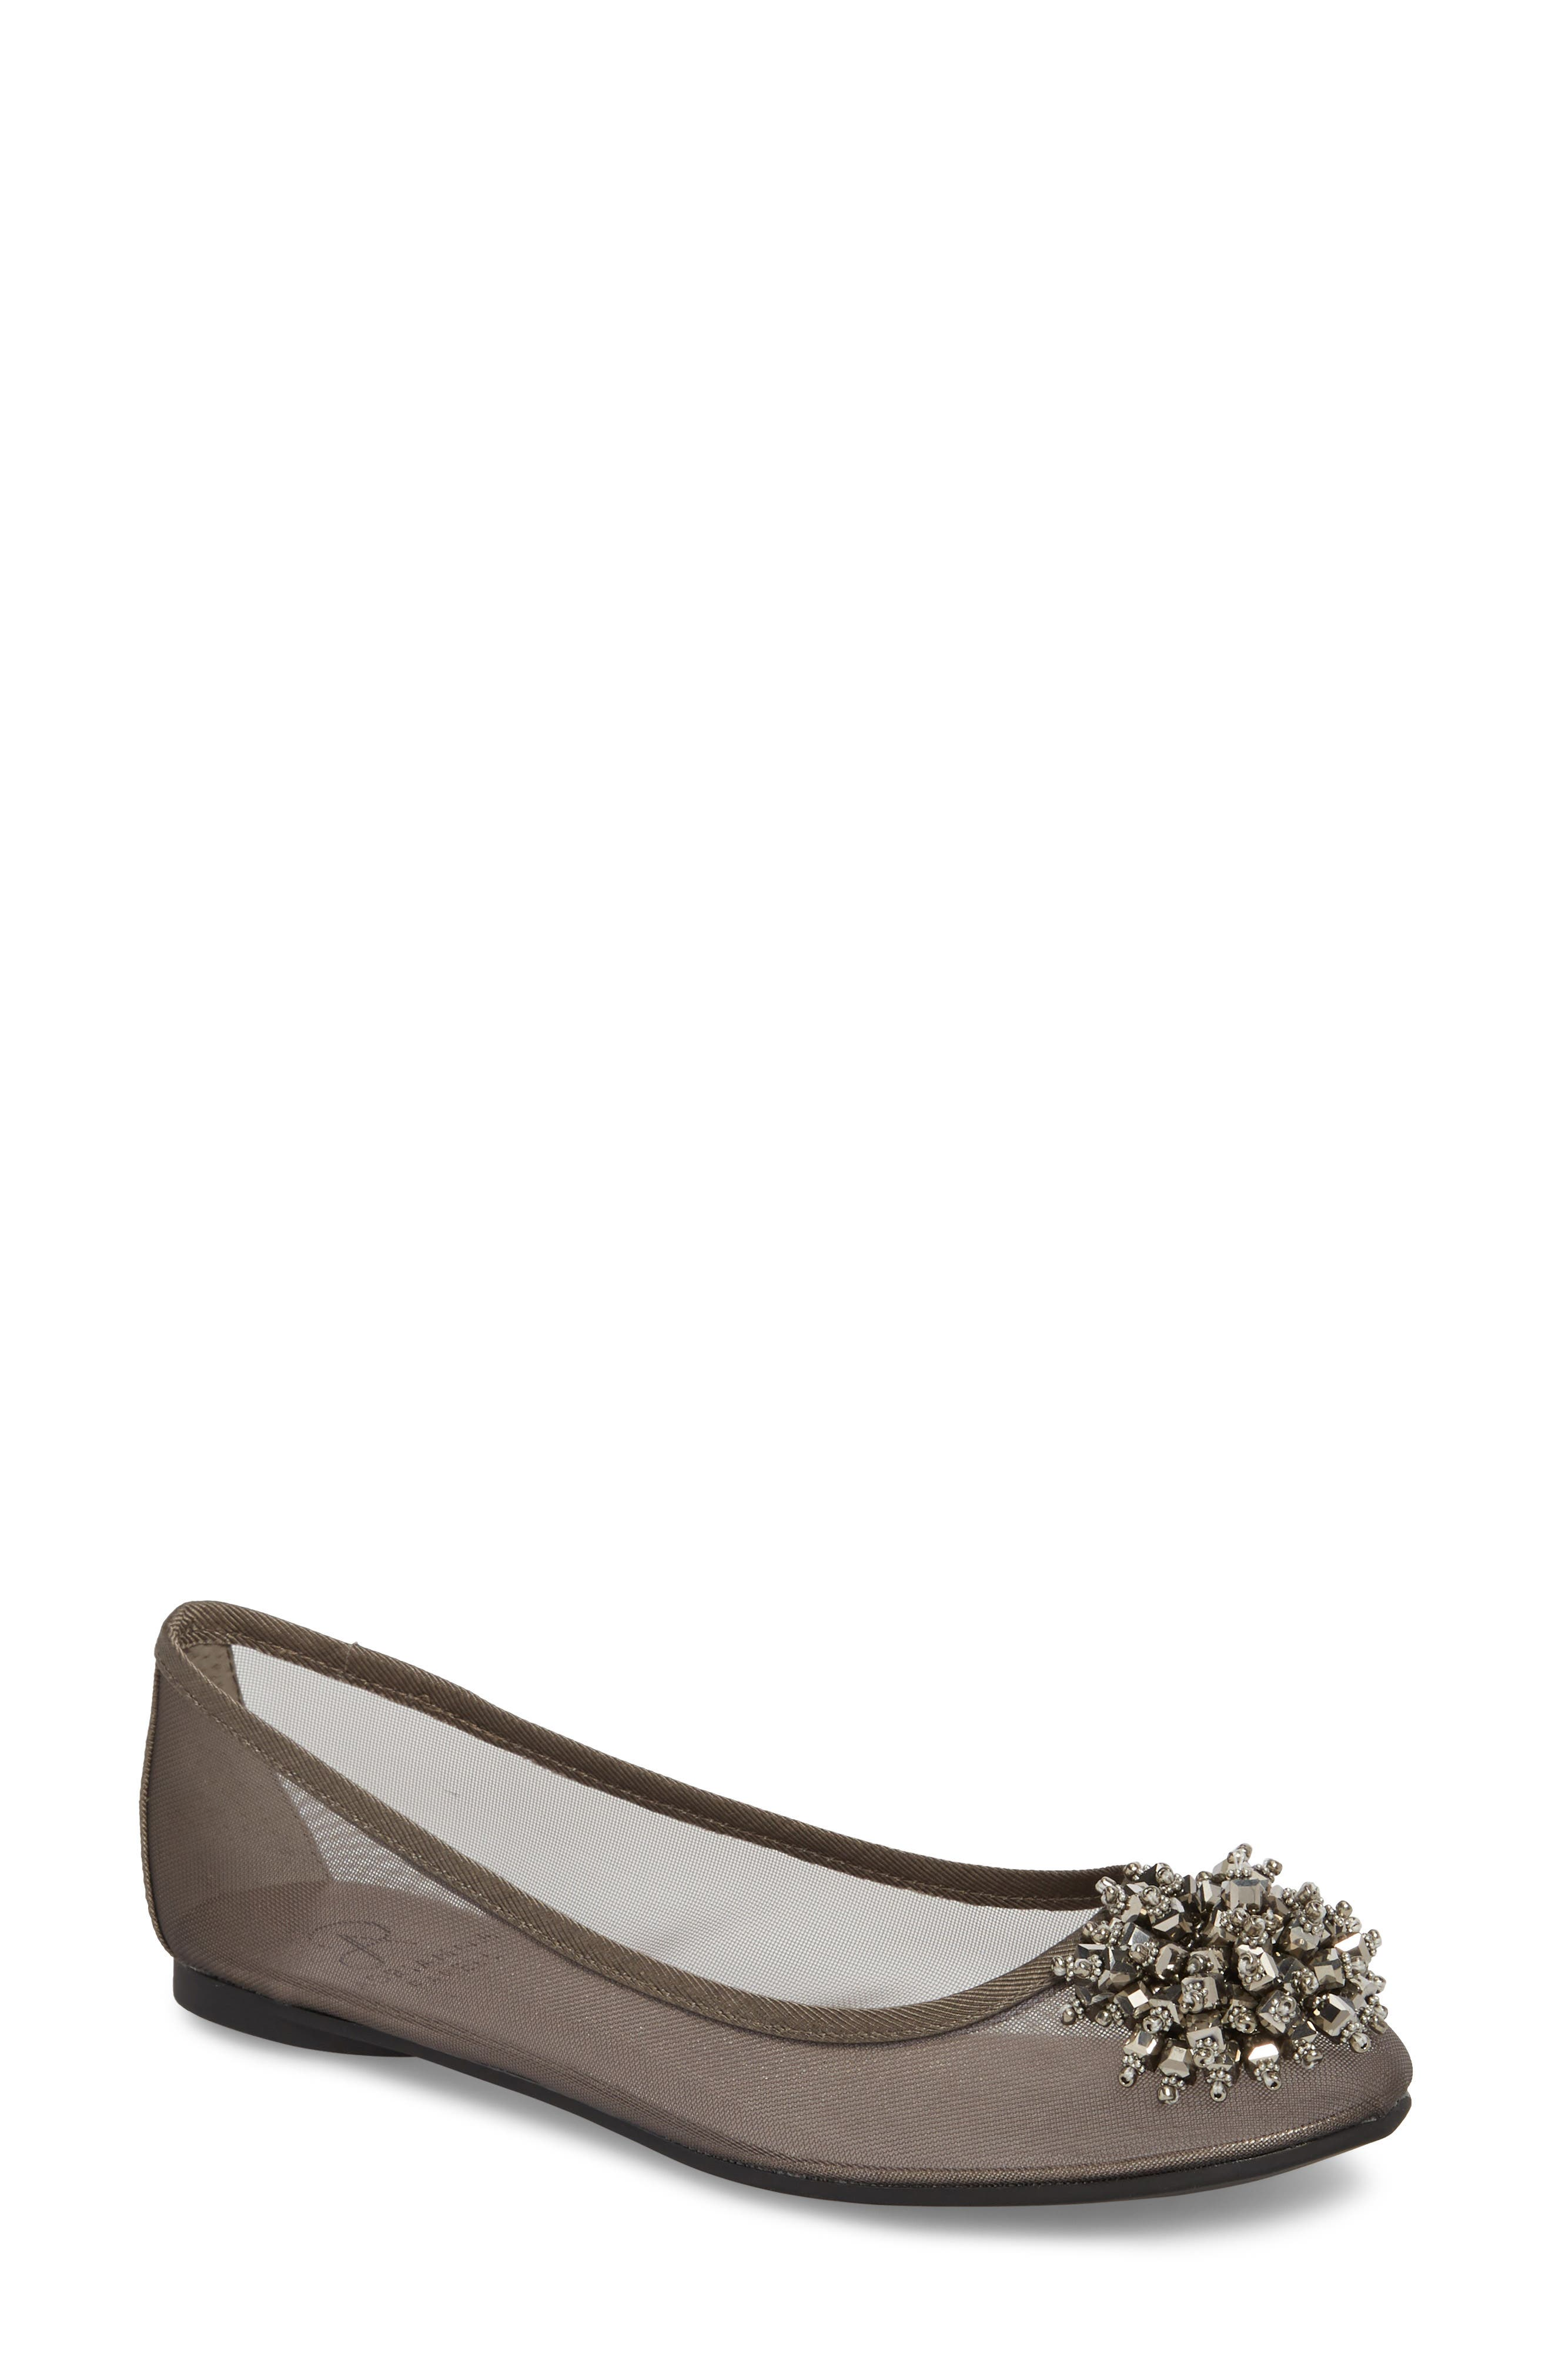 Adrianna Papell Women's Stevie Embellished Flat aga0m7A